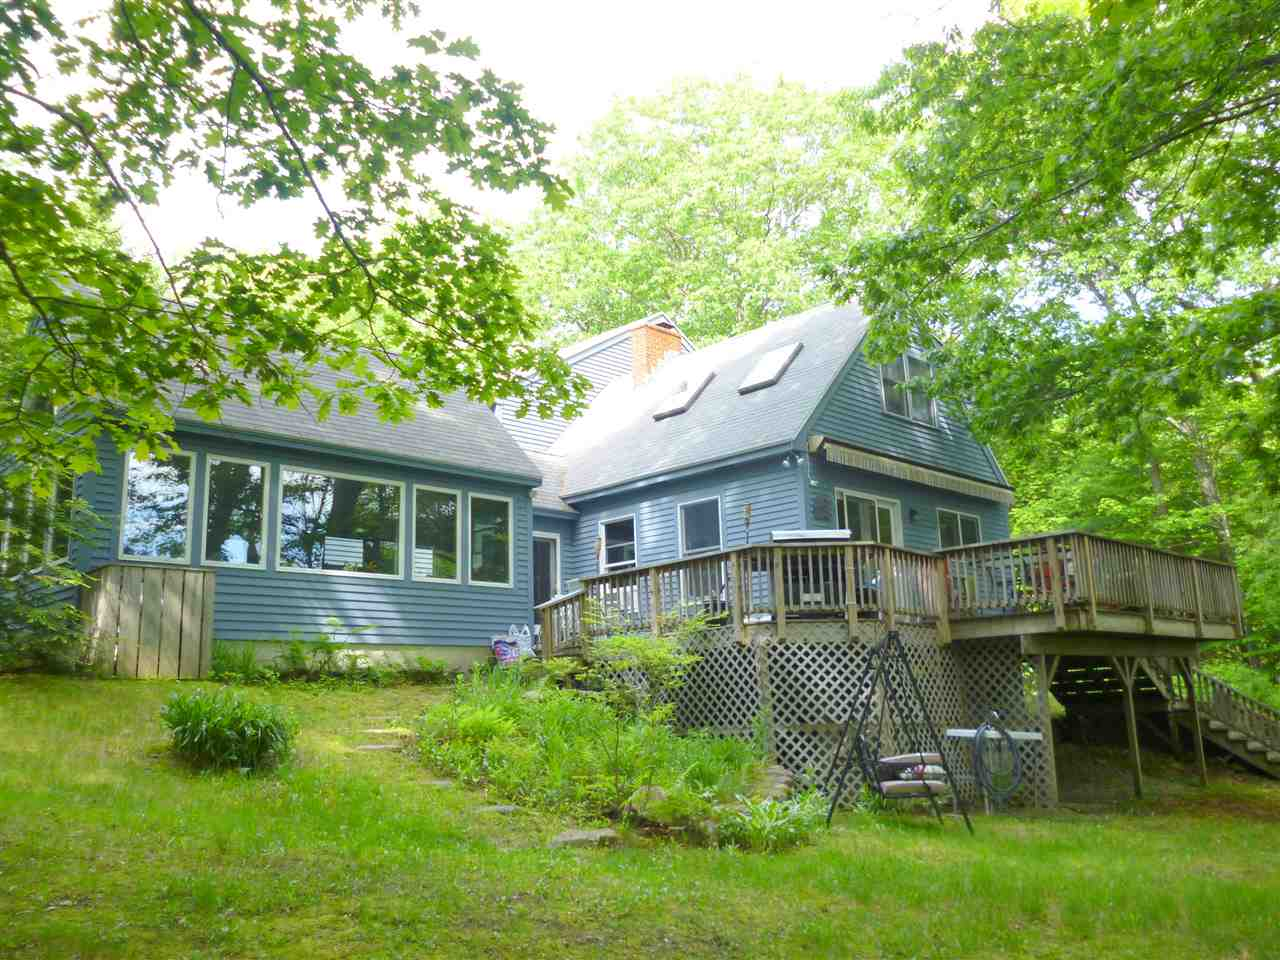 MLS 4639432: 20 Pflueger Lane, Wolfeboro NH